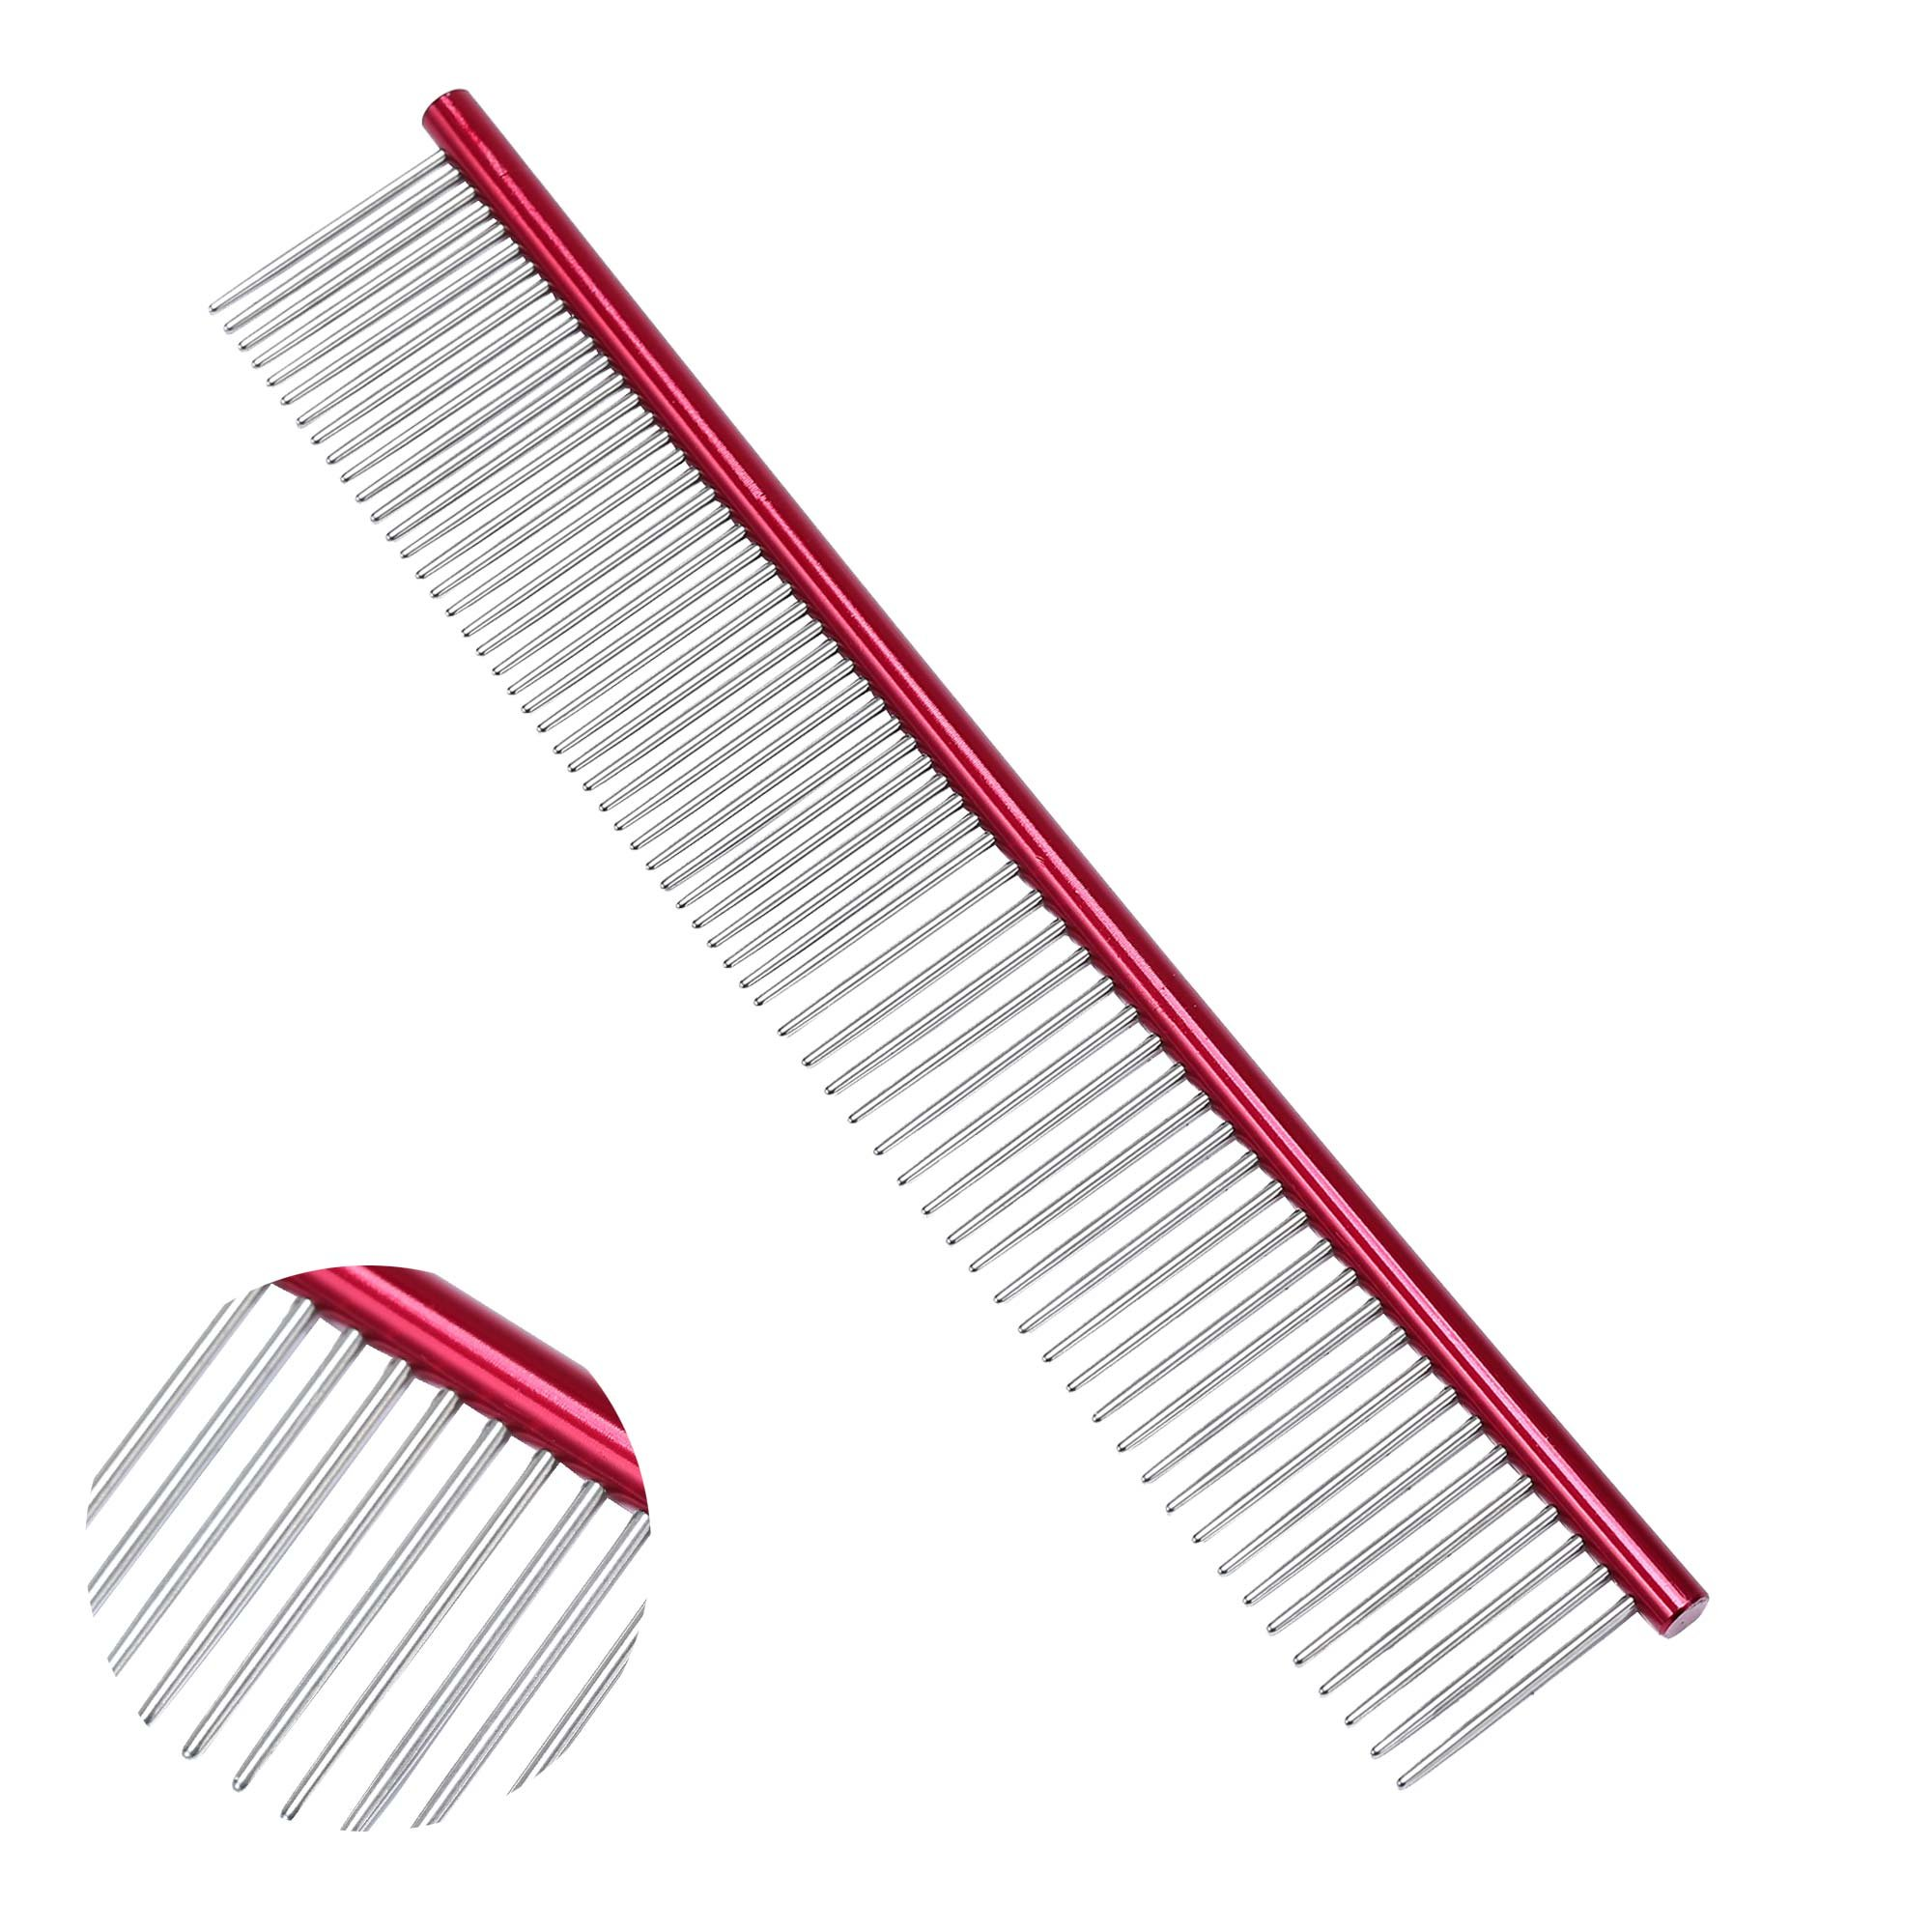 Pet Grooming Comb - Metal Comb For Dogs, Cats and Other Pets, Great Shedding Tool(Red)